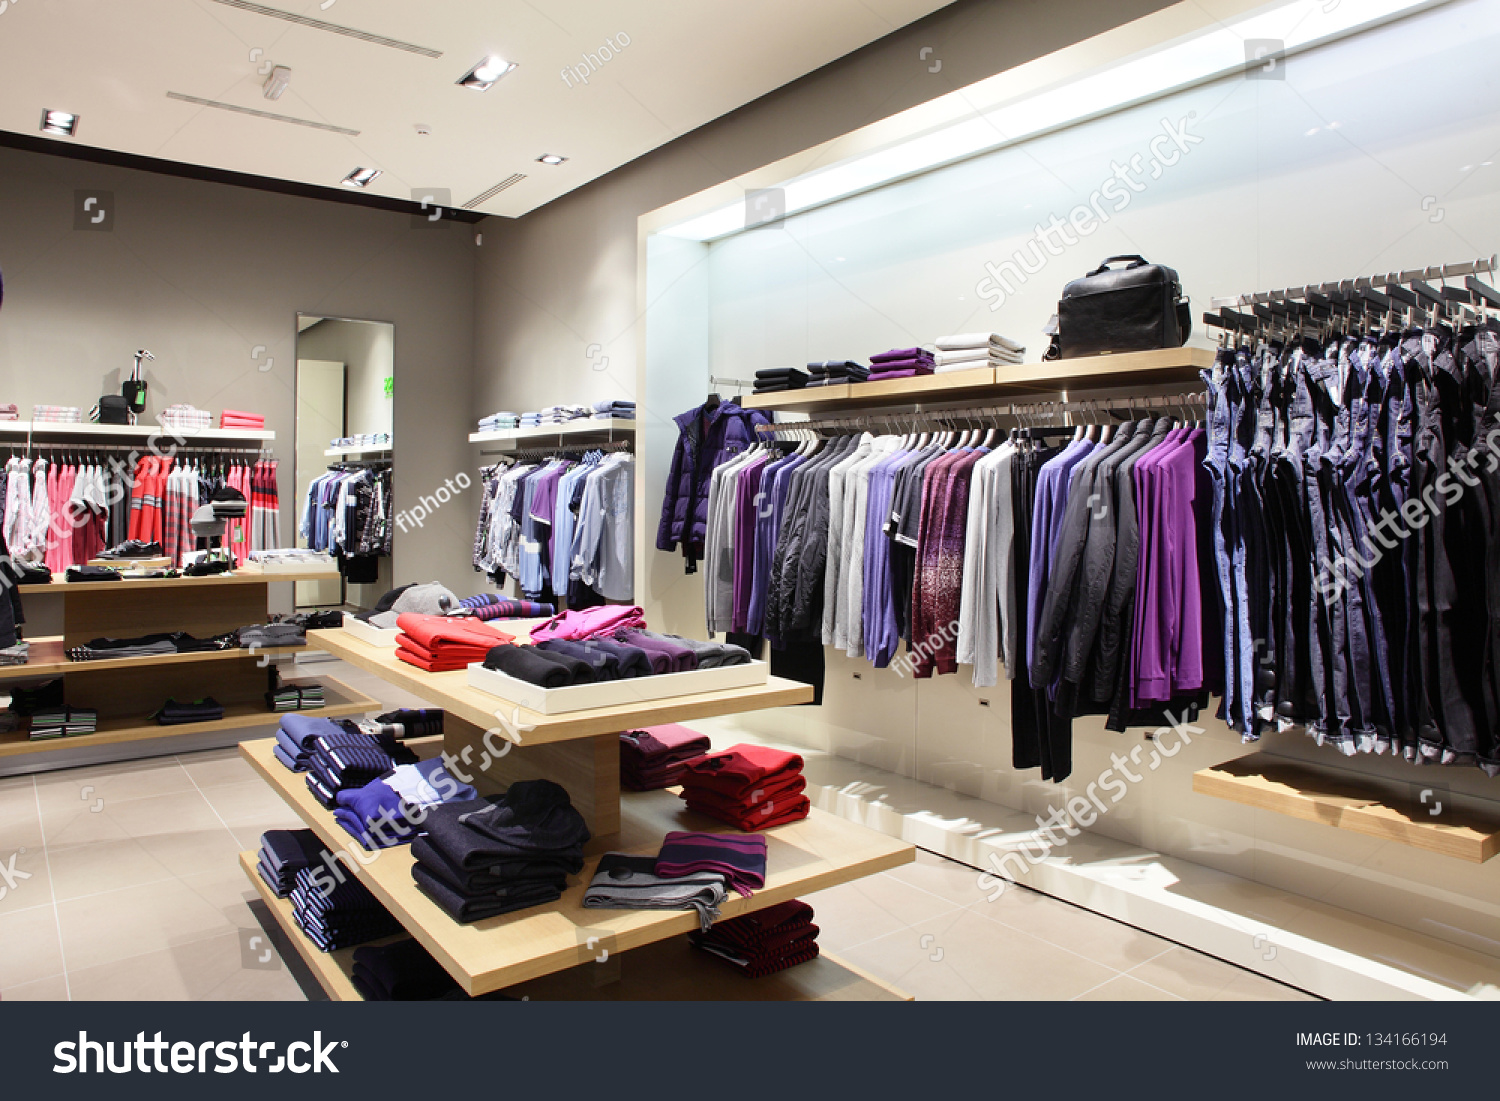 Interior Brand New Fashion Clothes Store Stock Photo 134166194 - Shutterstock